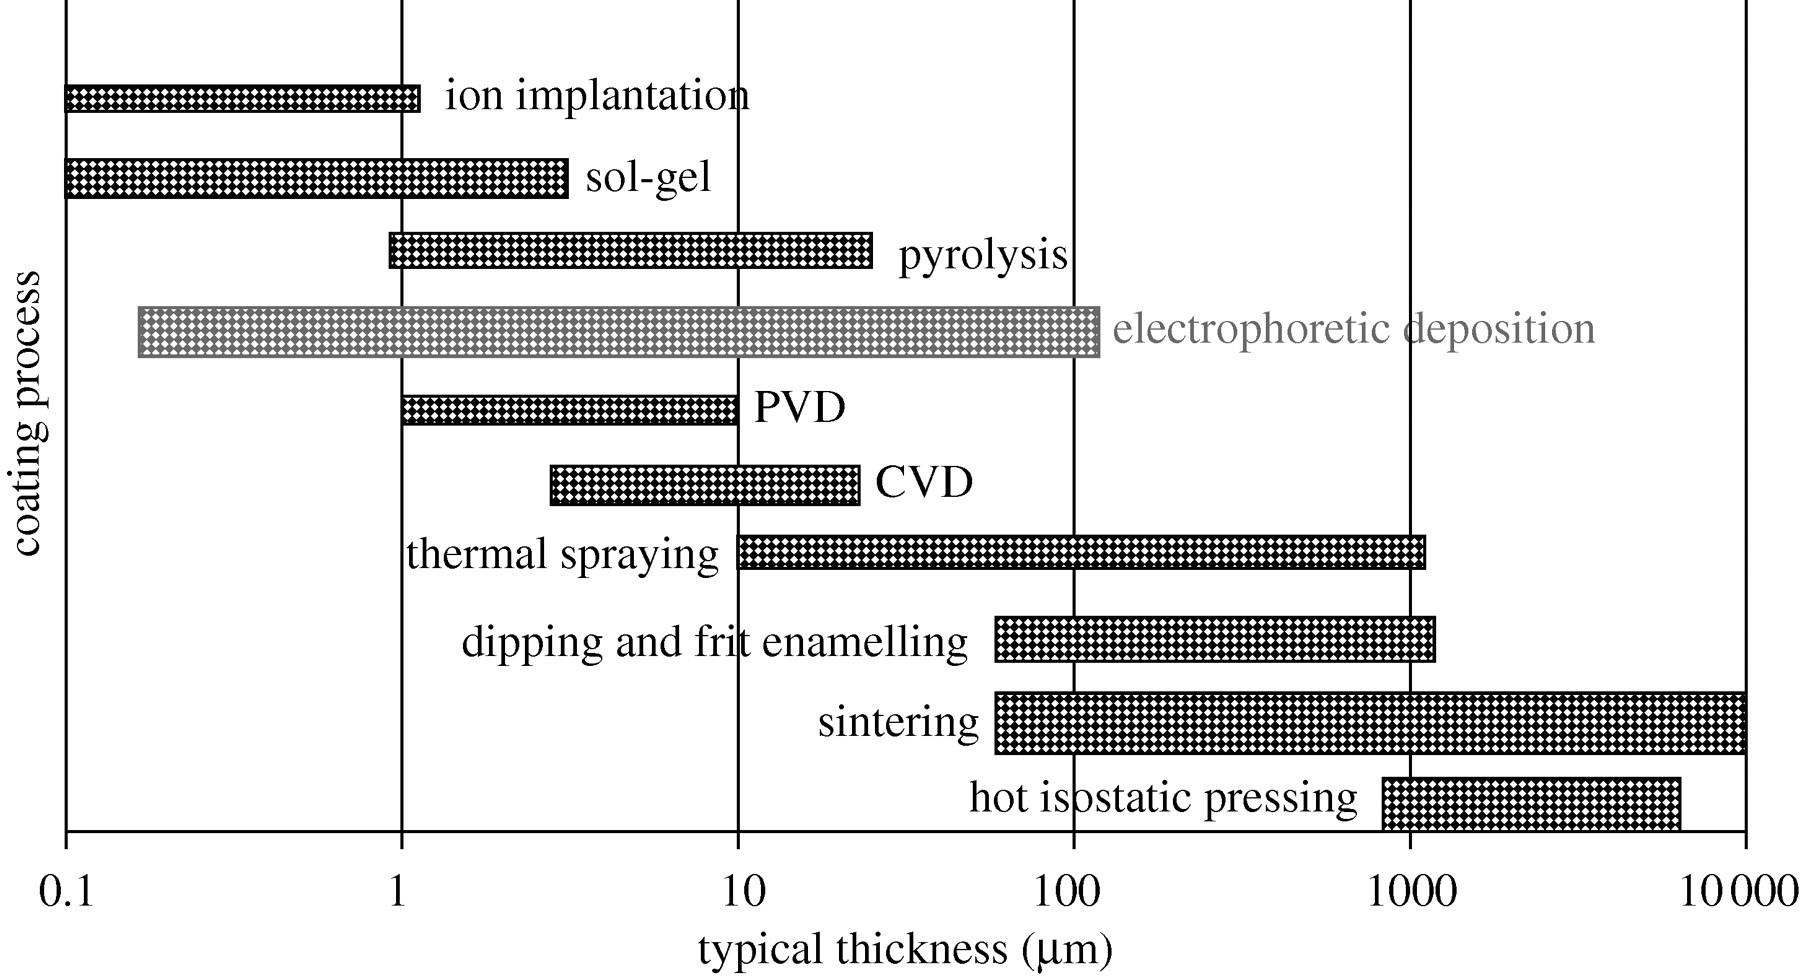 Electrophoretic deposition of biomaterials | Journal of The Royal